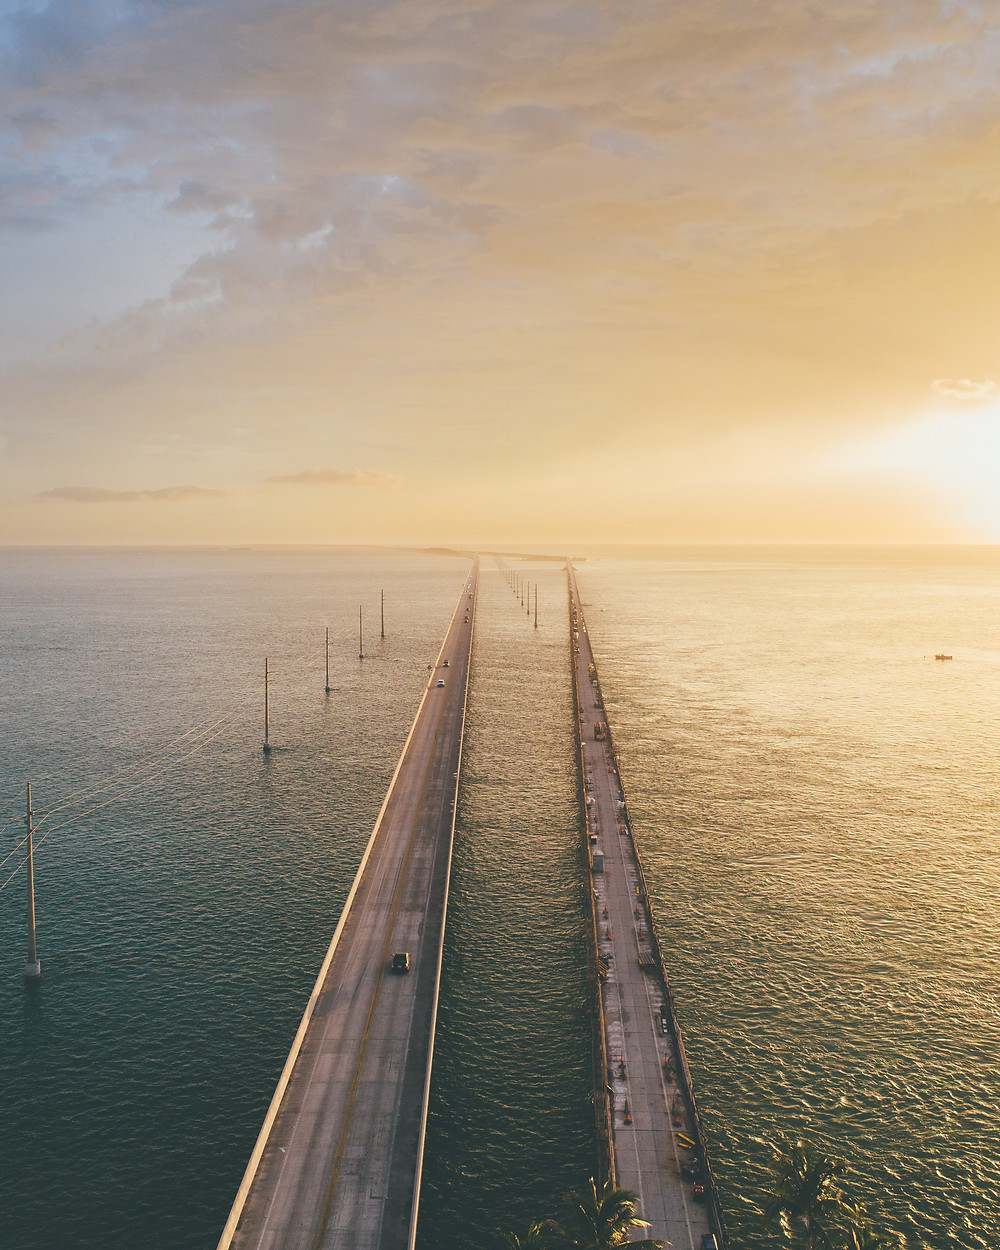 Drone picture of a bridge at sunset in the florida keys by pierce gainey